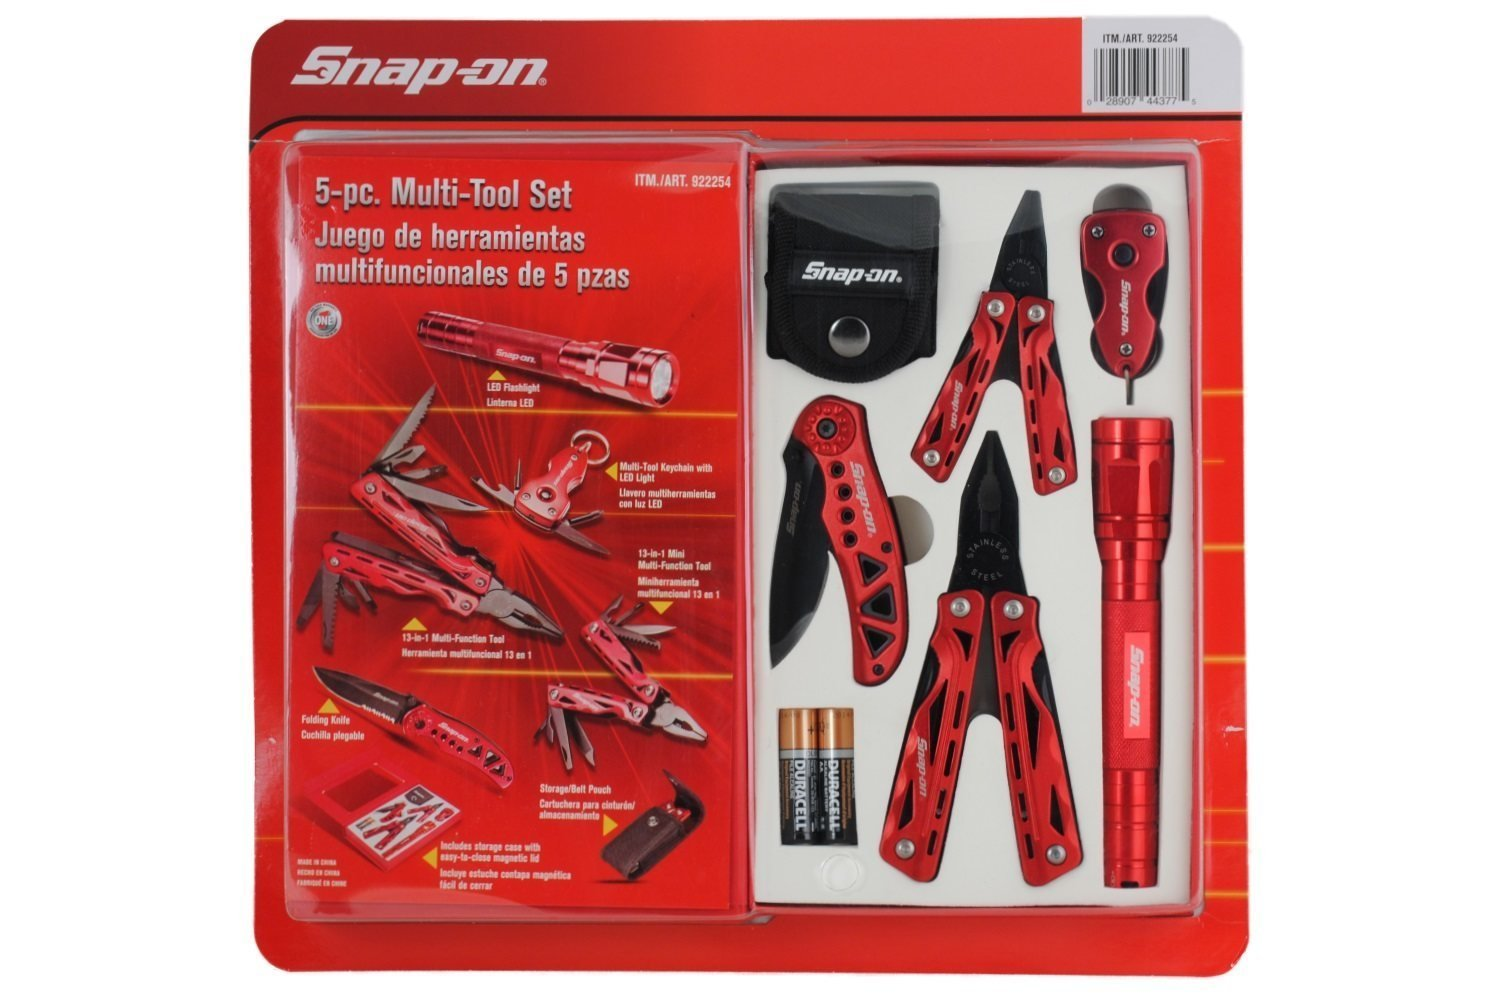 Snap-on 5-pc Multi Tool Set - - Amazon.com